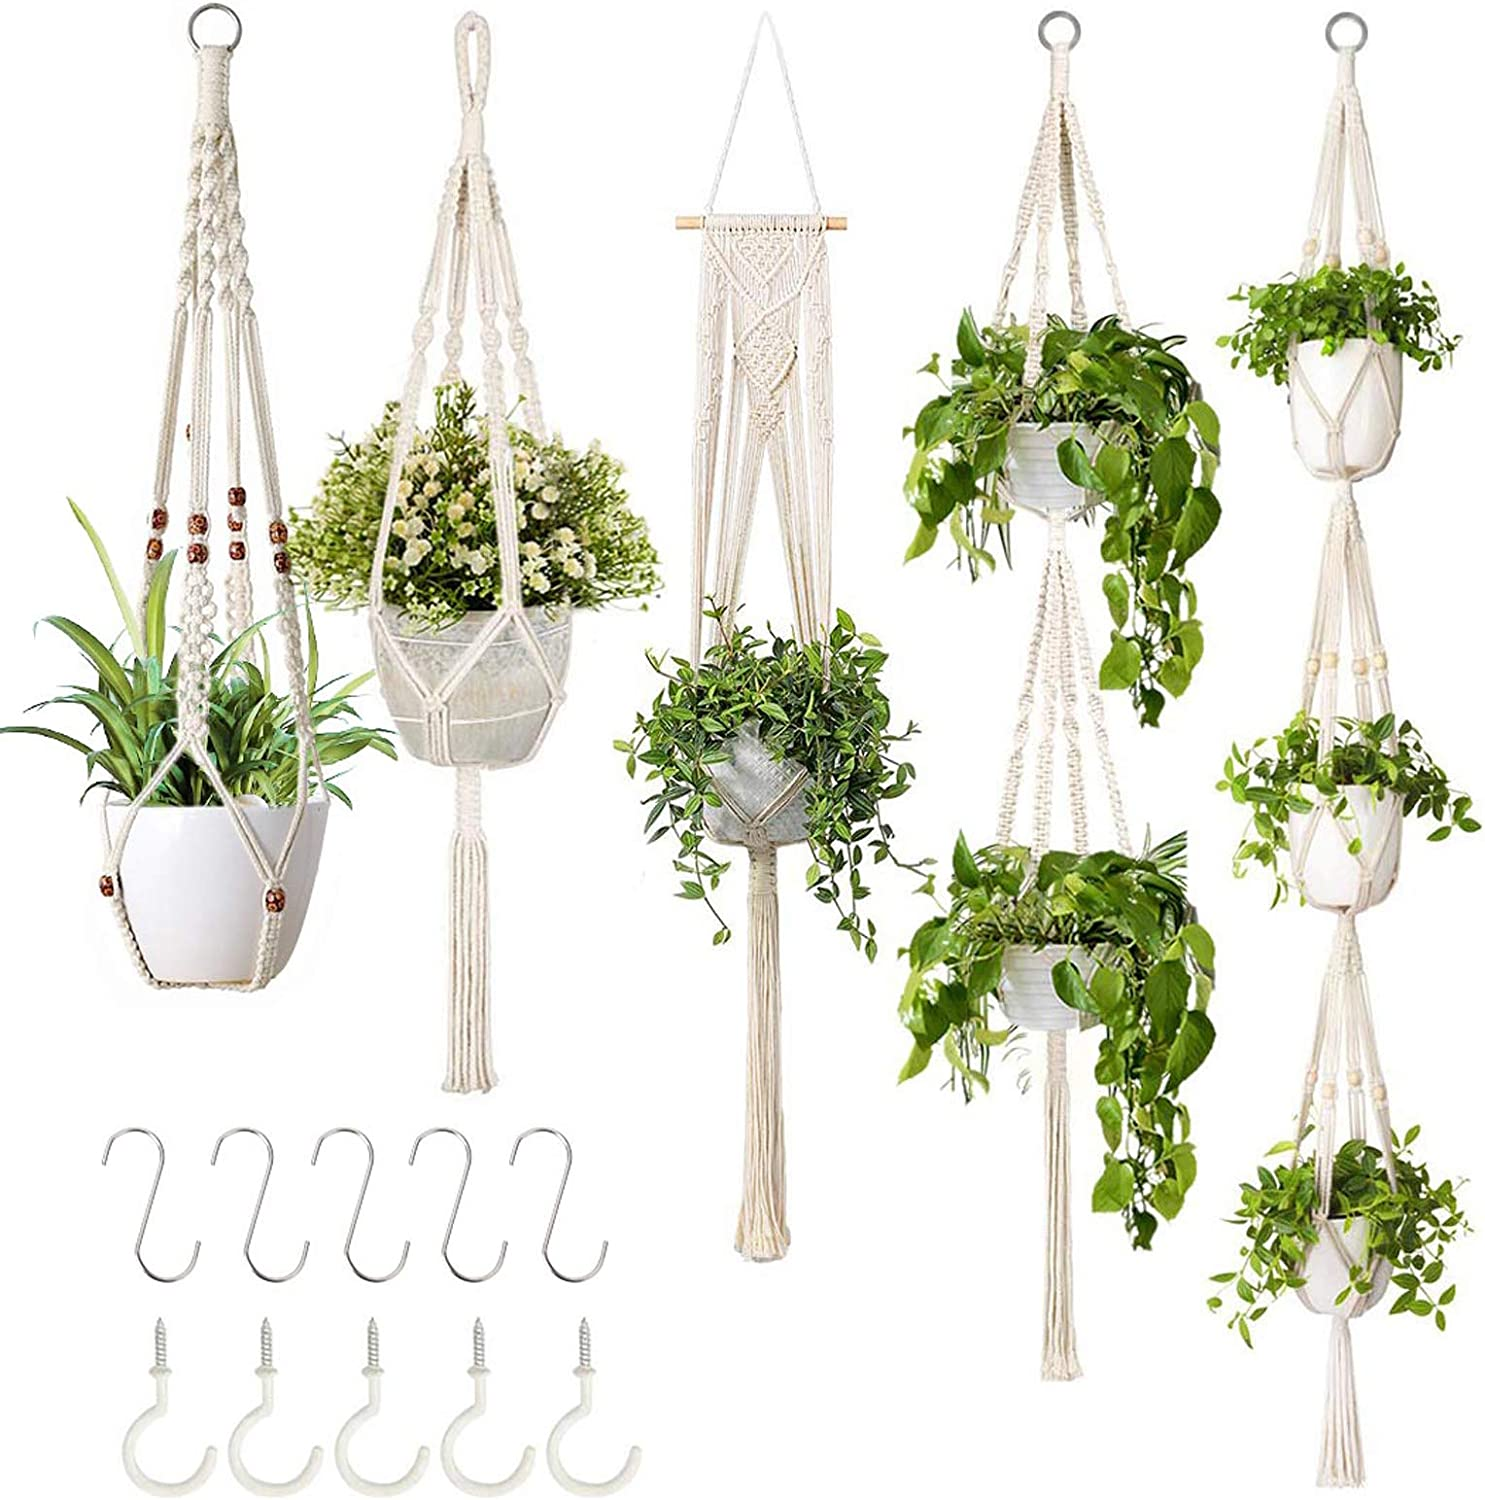 GROWNEER 5 Packs Macrame Plant Hangers with 5 Hooks, Different Tiers, Handmade Cotton Rope Hanging Planters Set Flower Pots Holder Stand, for Indoor Outdoor Boho Home Decor: Kitchen & Dining